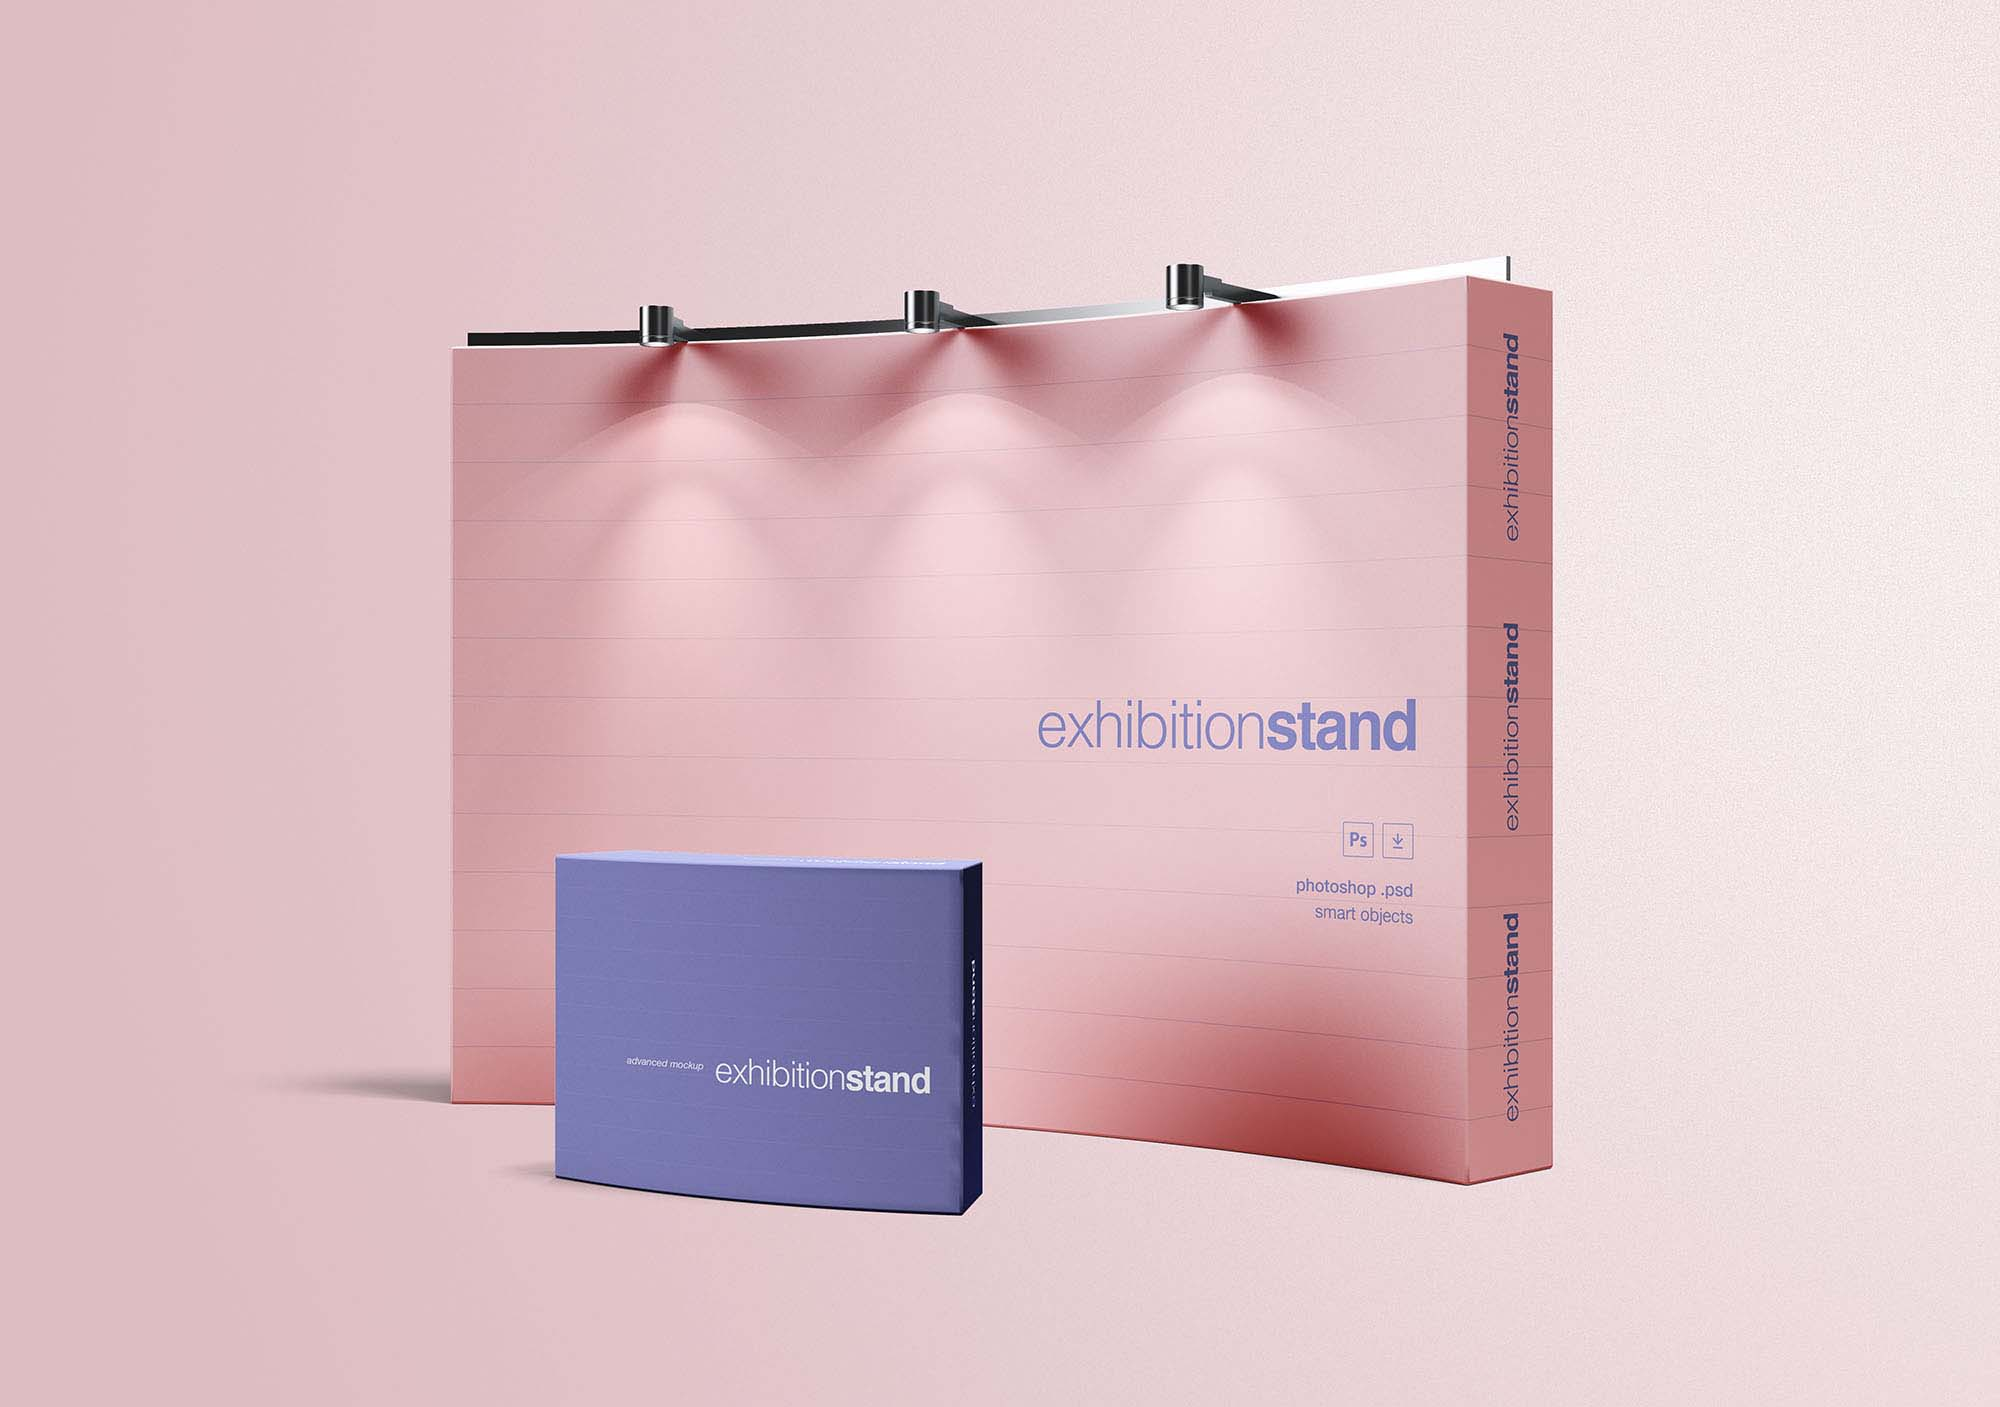 Simple Exhibition Stand Design : Free simple exhibition stand mockup psd